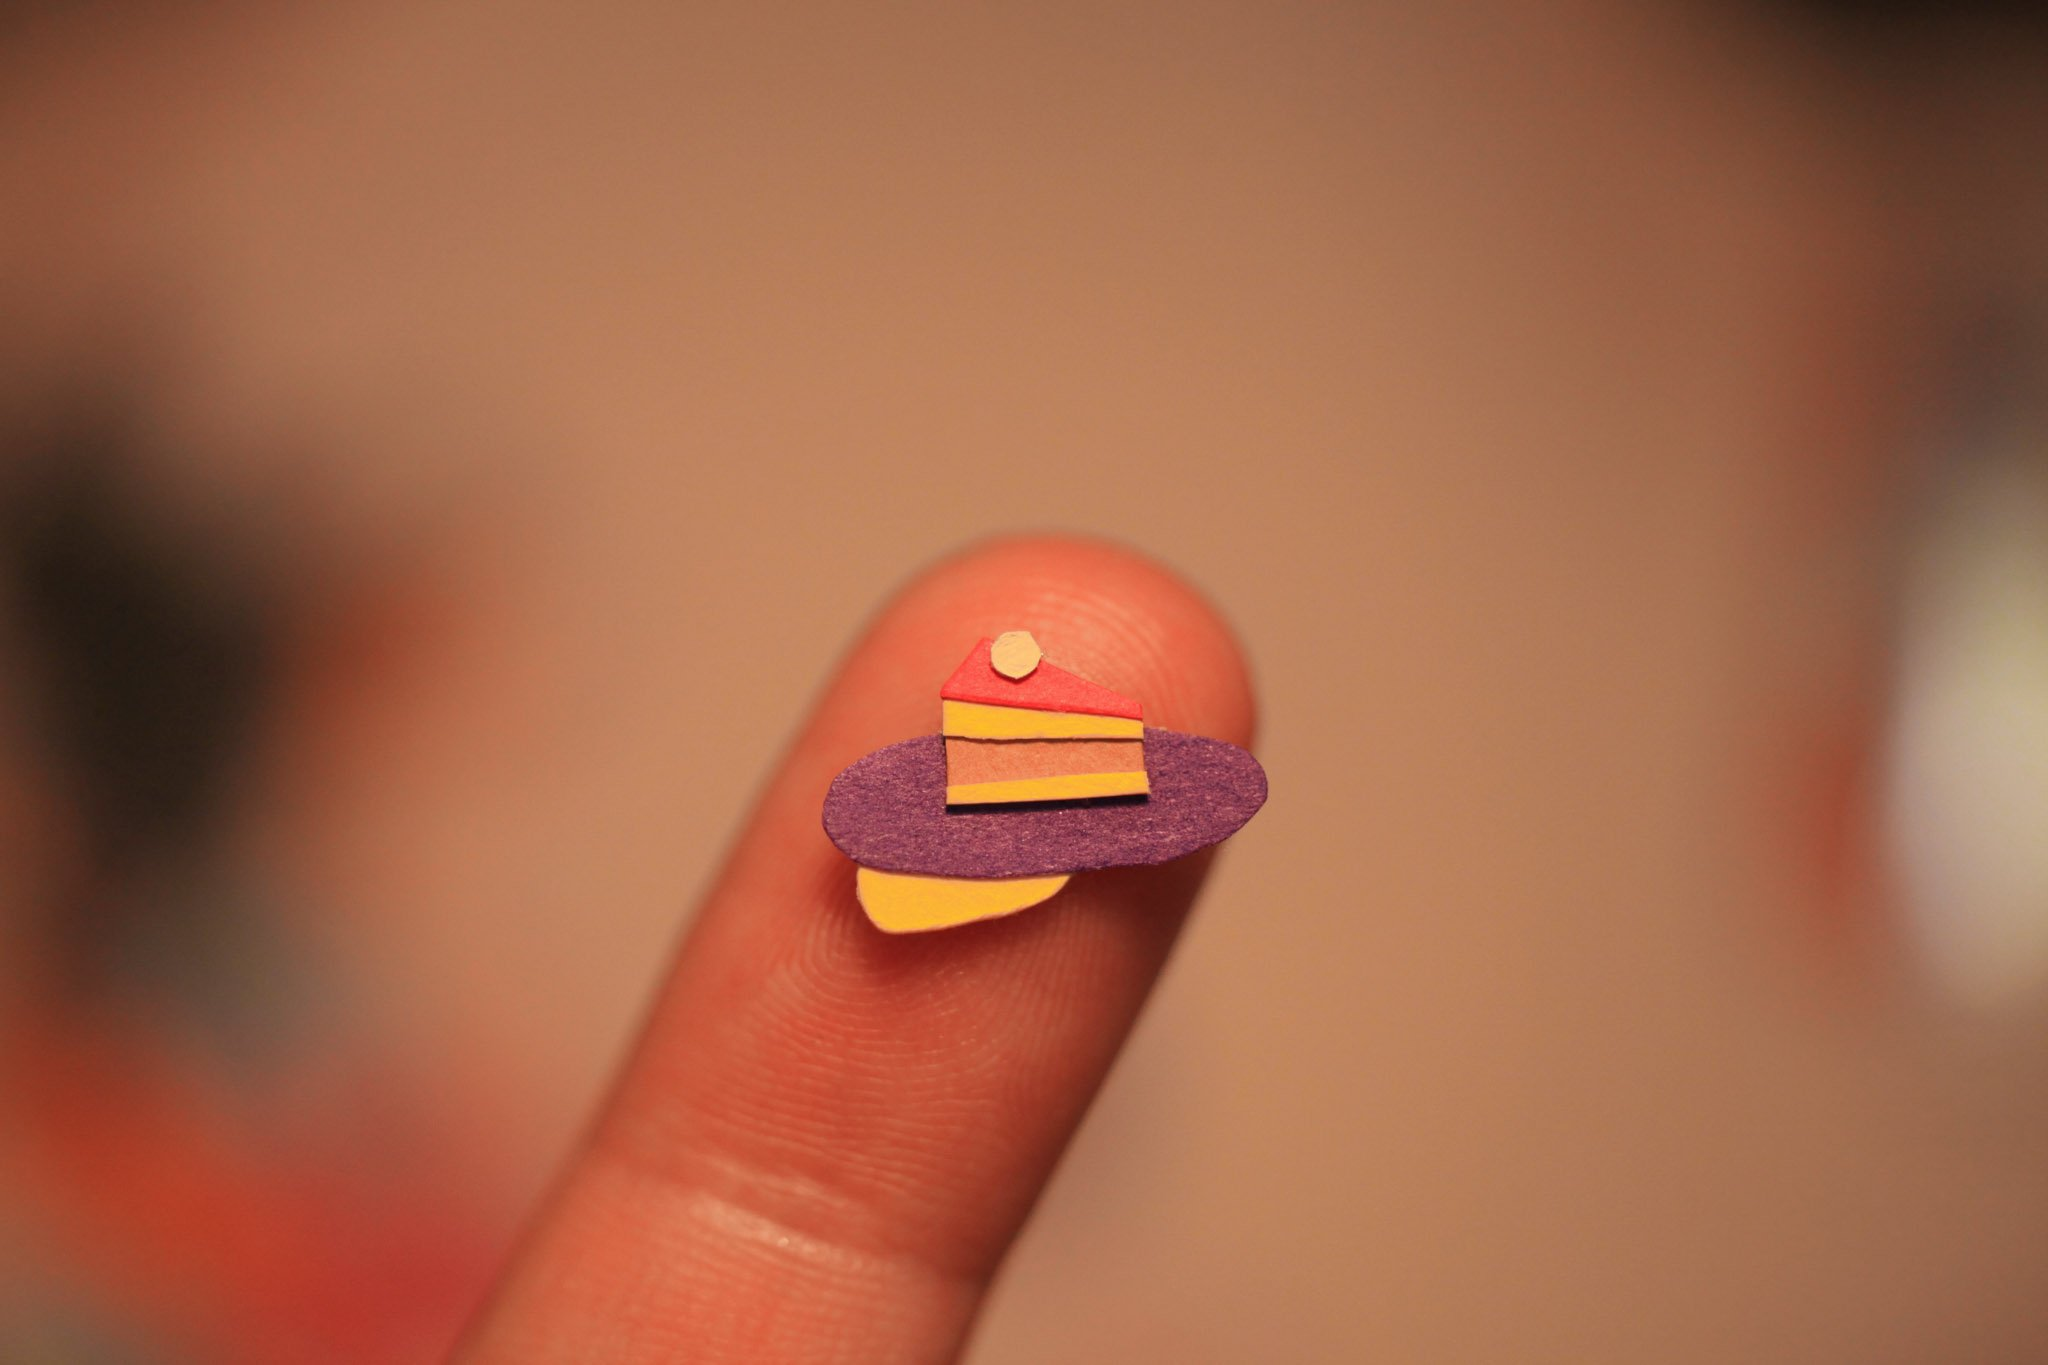 Paper cake on a finger tip